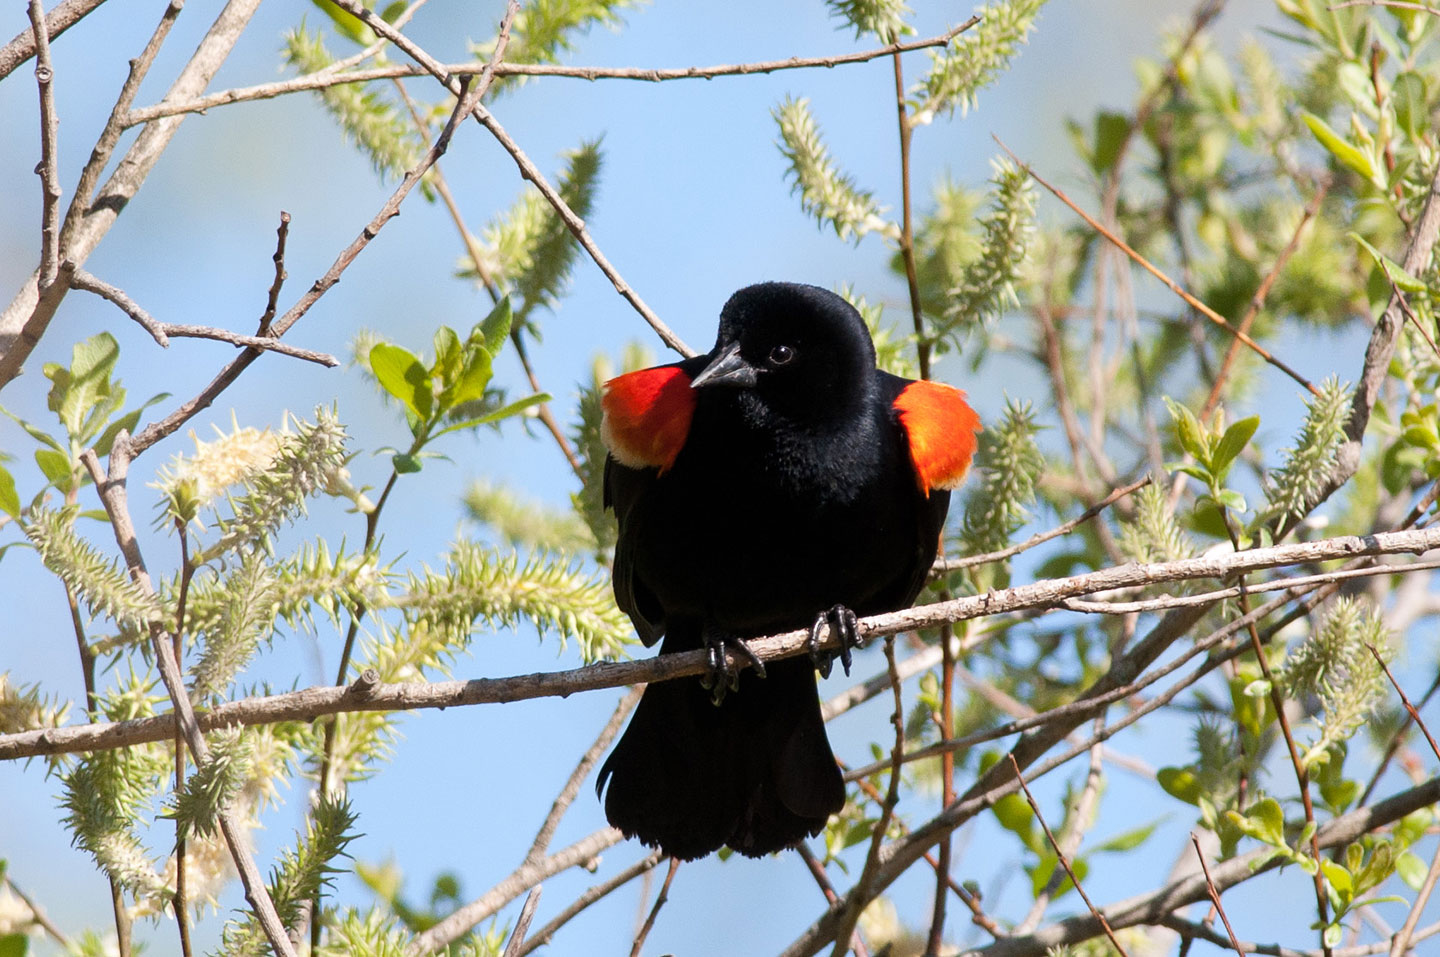 A red-winged blackbird on a tree branch